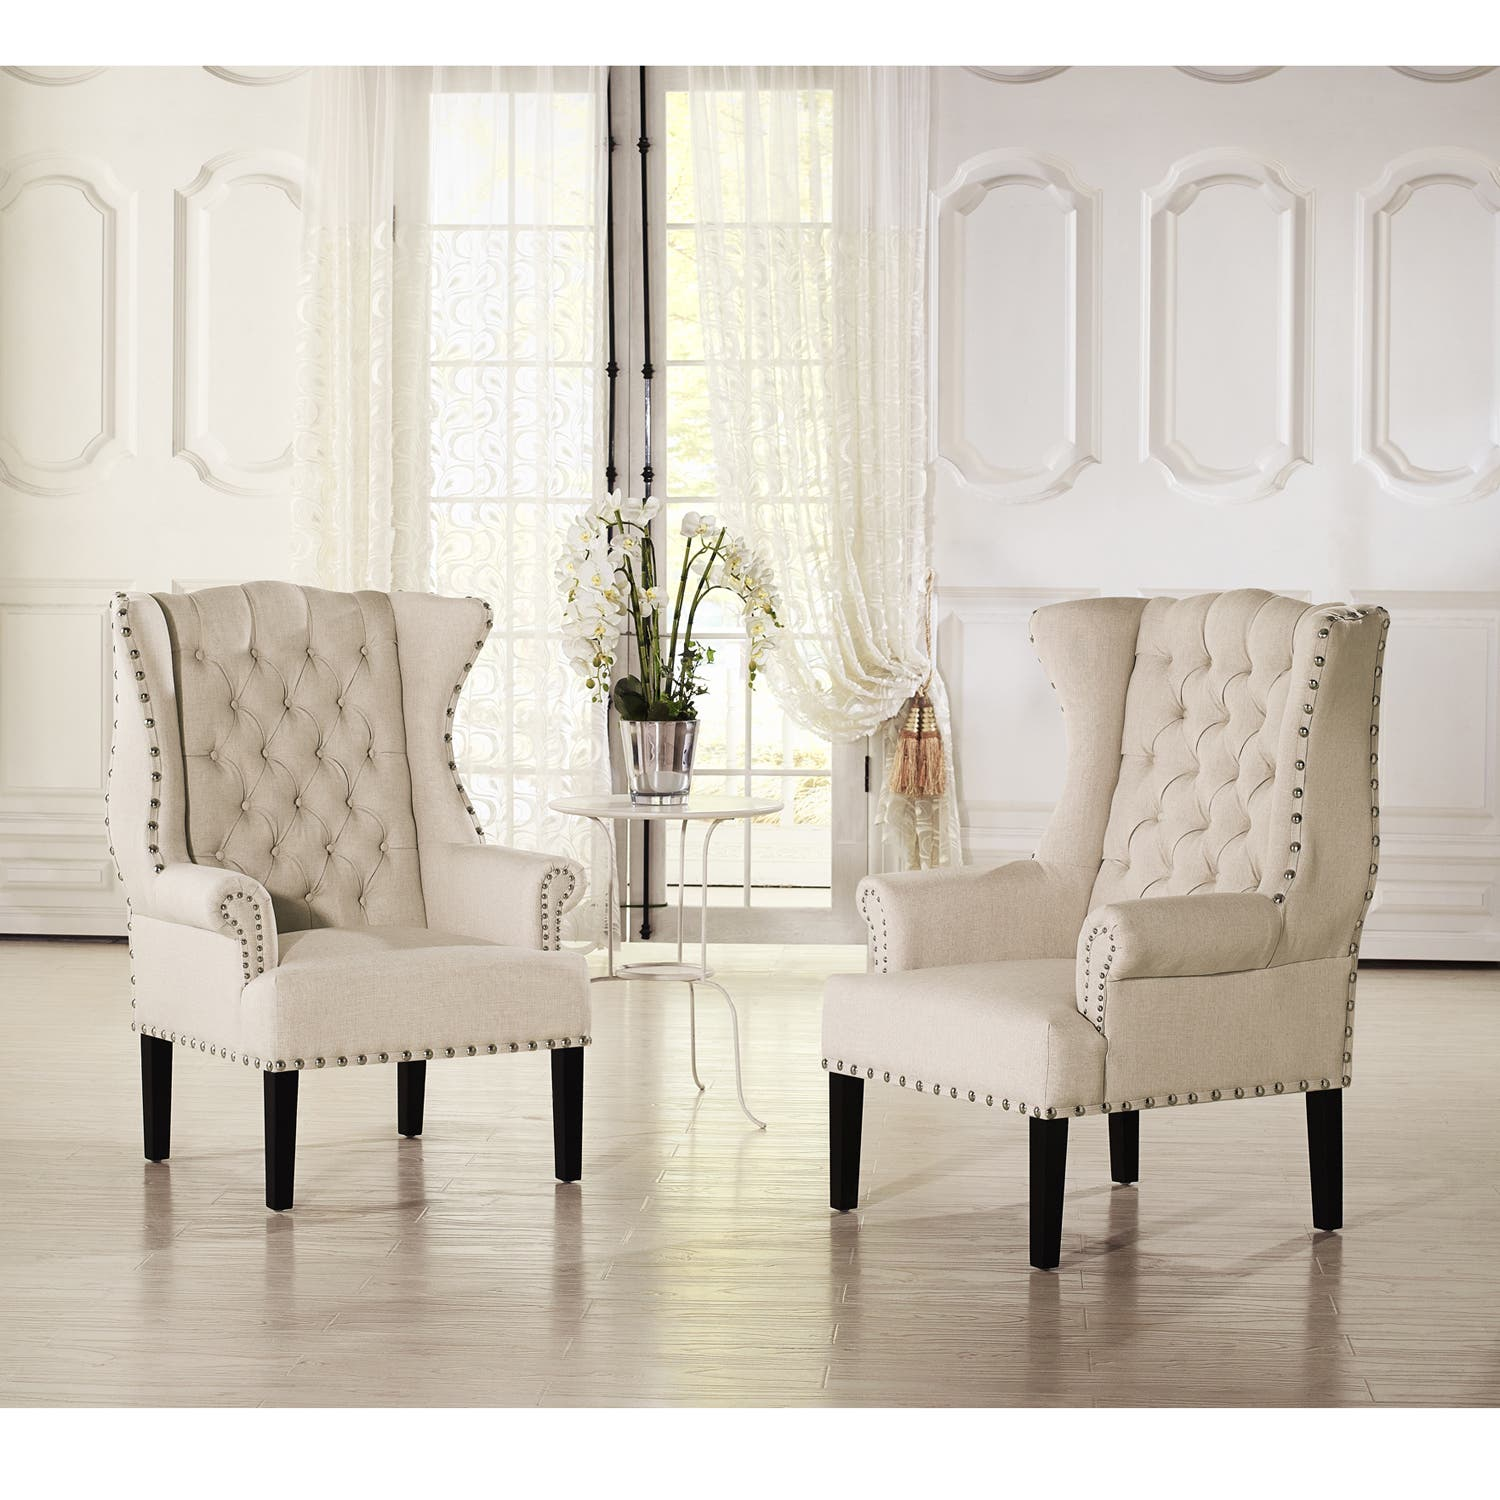 Best Place To Buy Living Room Furniture: Buy Living Room Chairs Online At Overstock